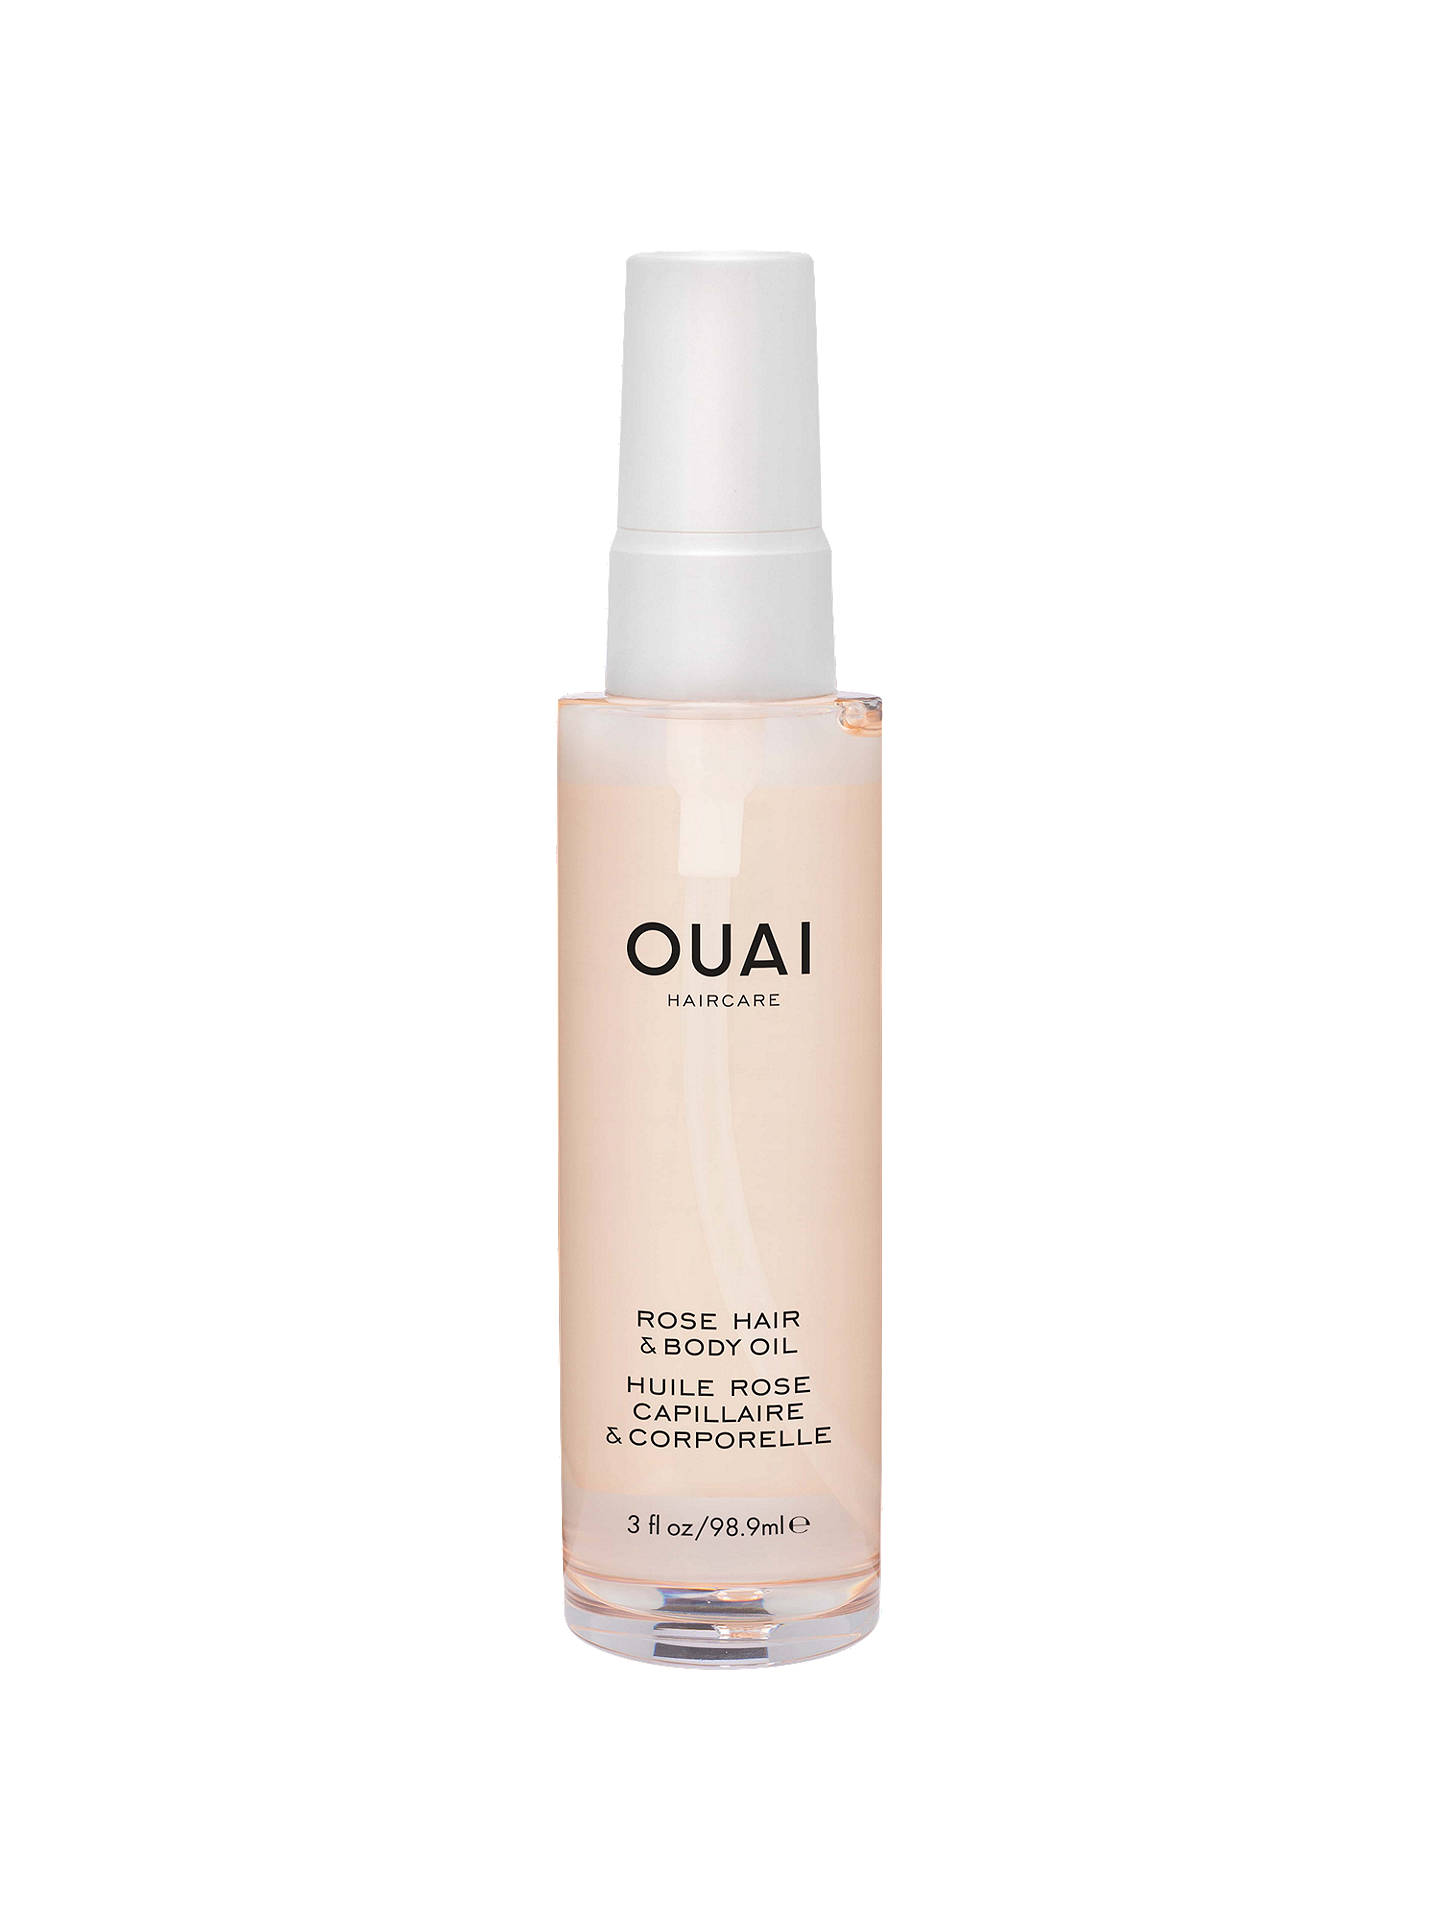 BuyOUAI Rose Hair & Body Oil, 98.9ml Online at johnlewis.com